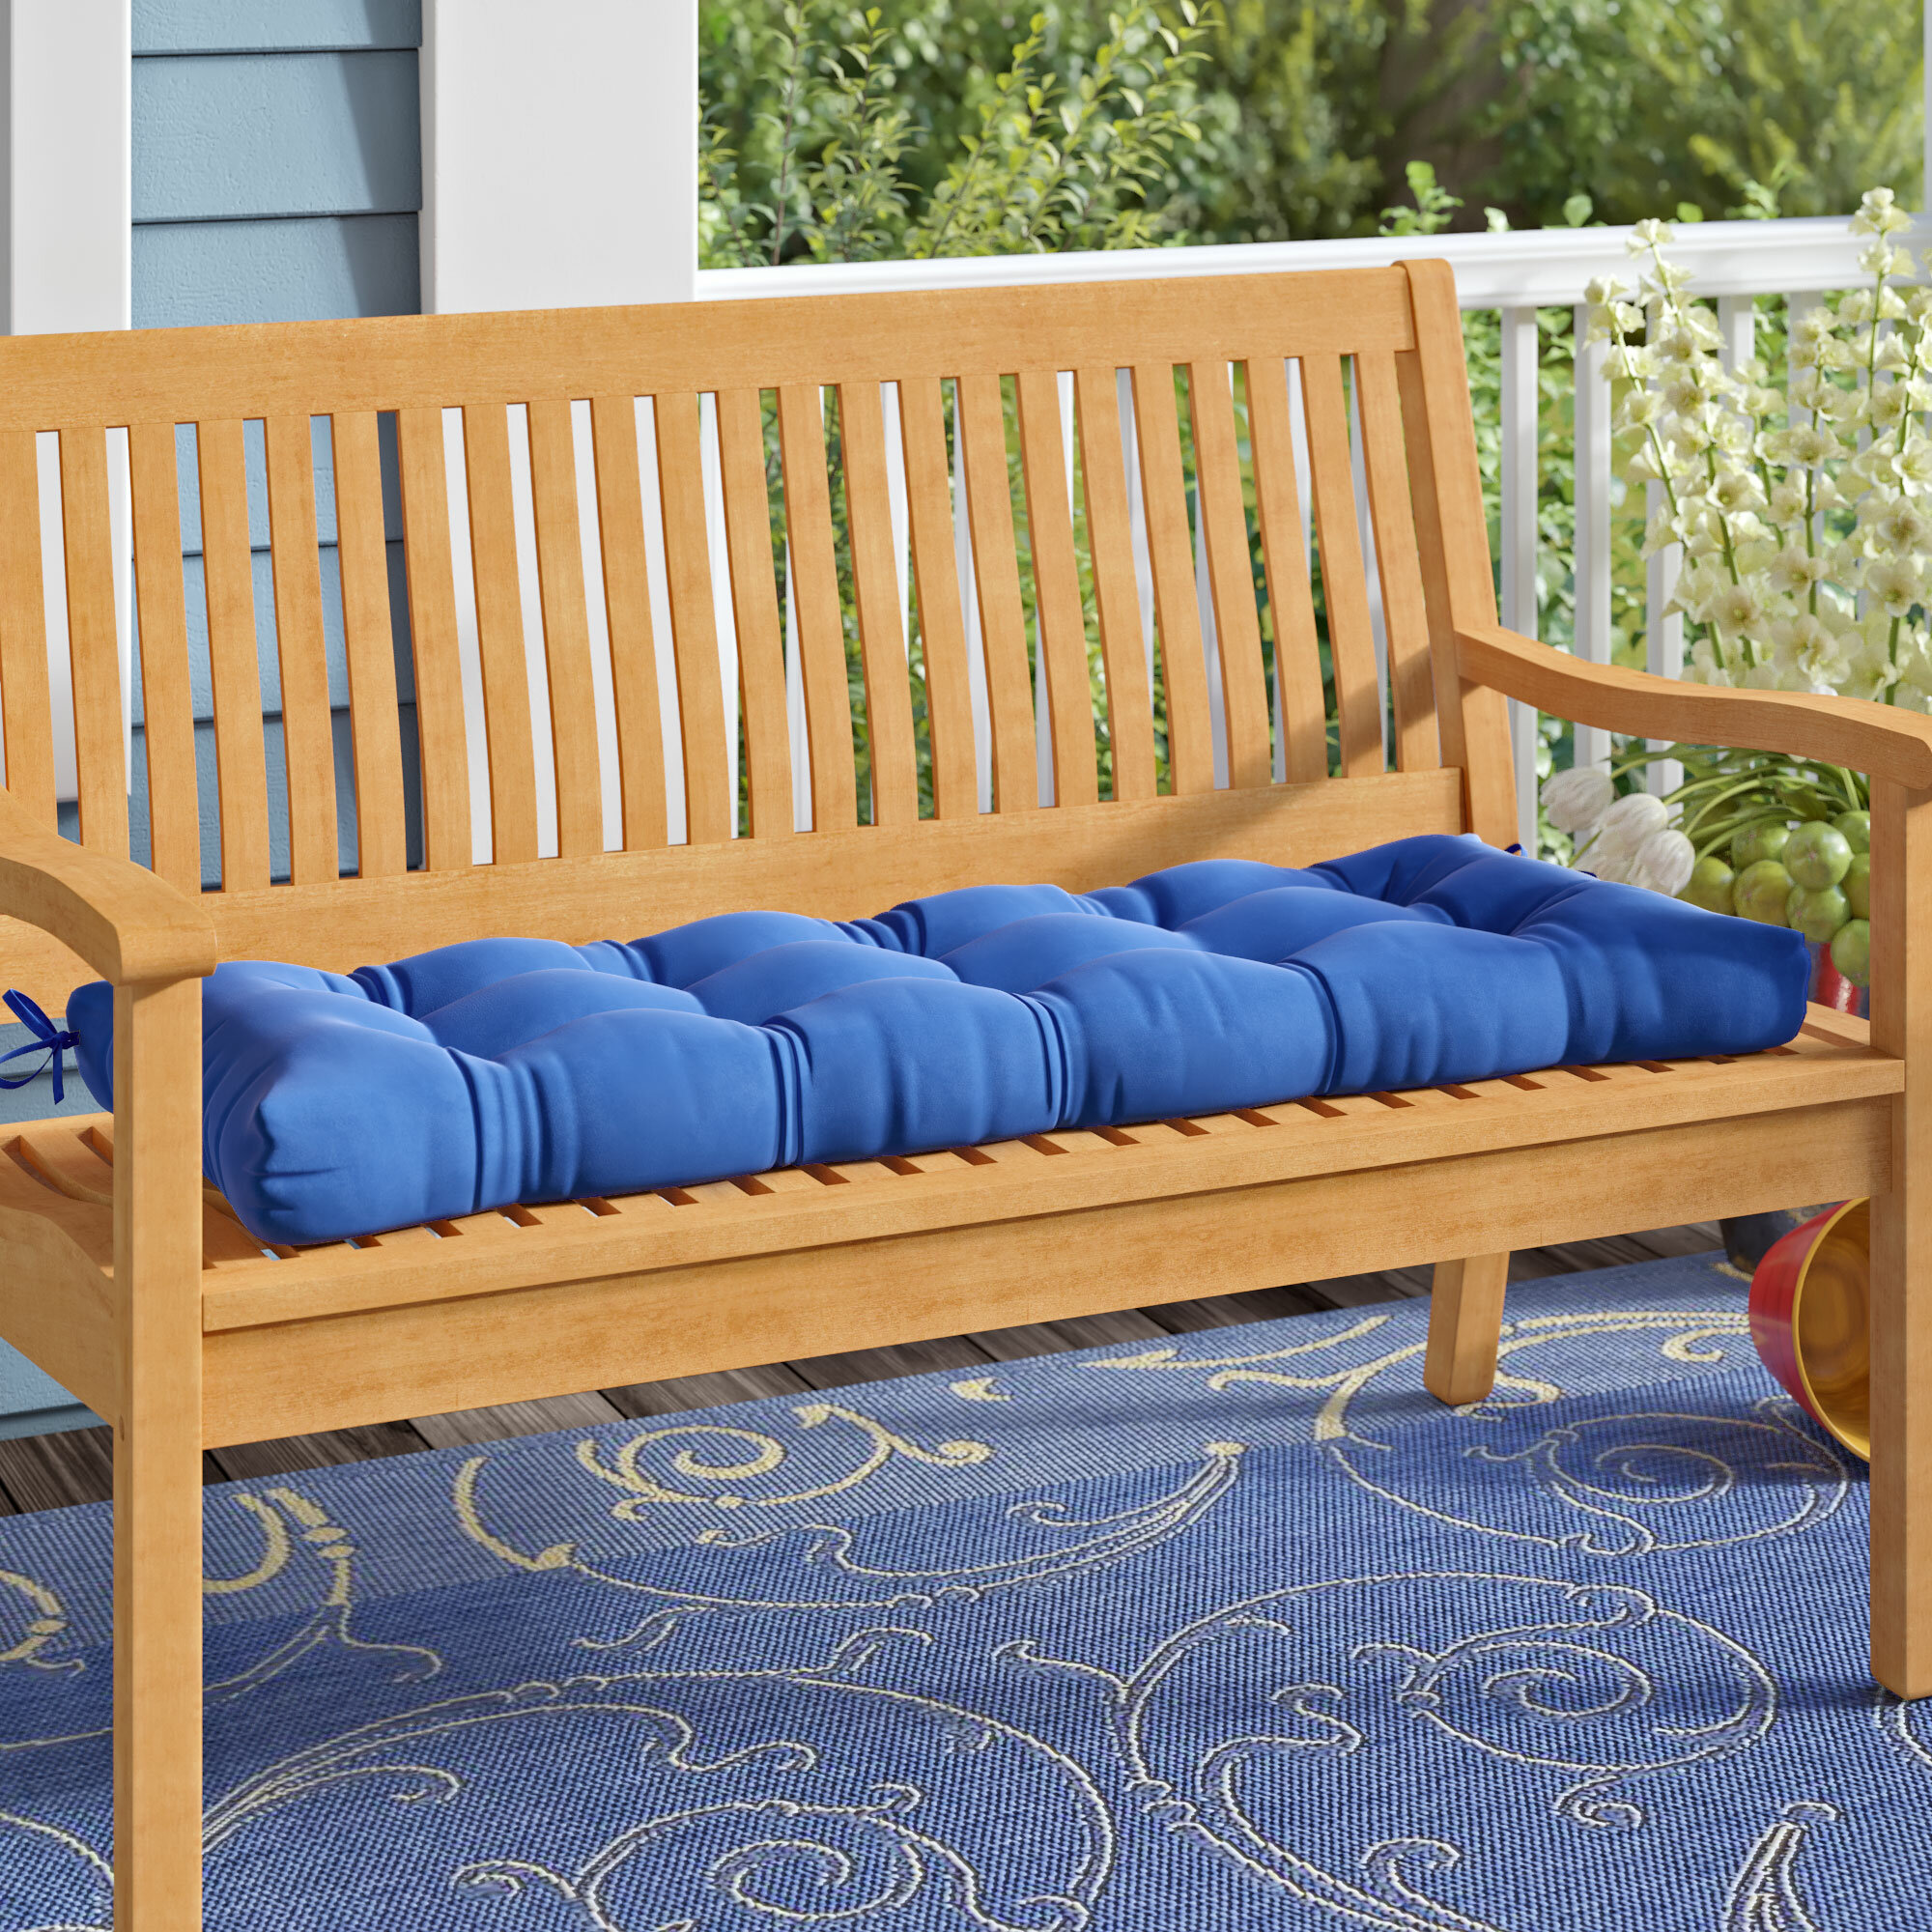 Picture of: Benches Garden Outdoors Outdoor Garden Bench Cushion Indoor Swing Cushion Bench Cushion 2 3 4 Seater V2